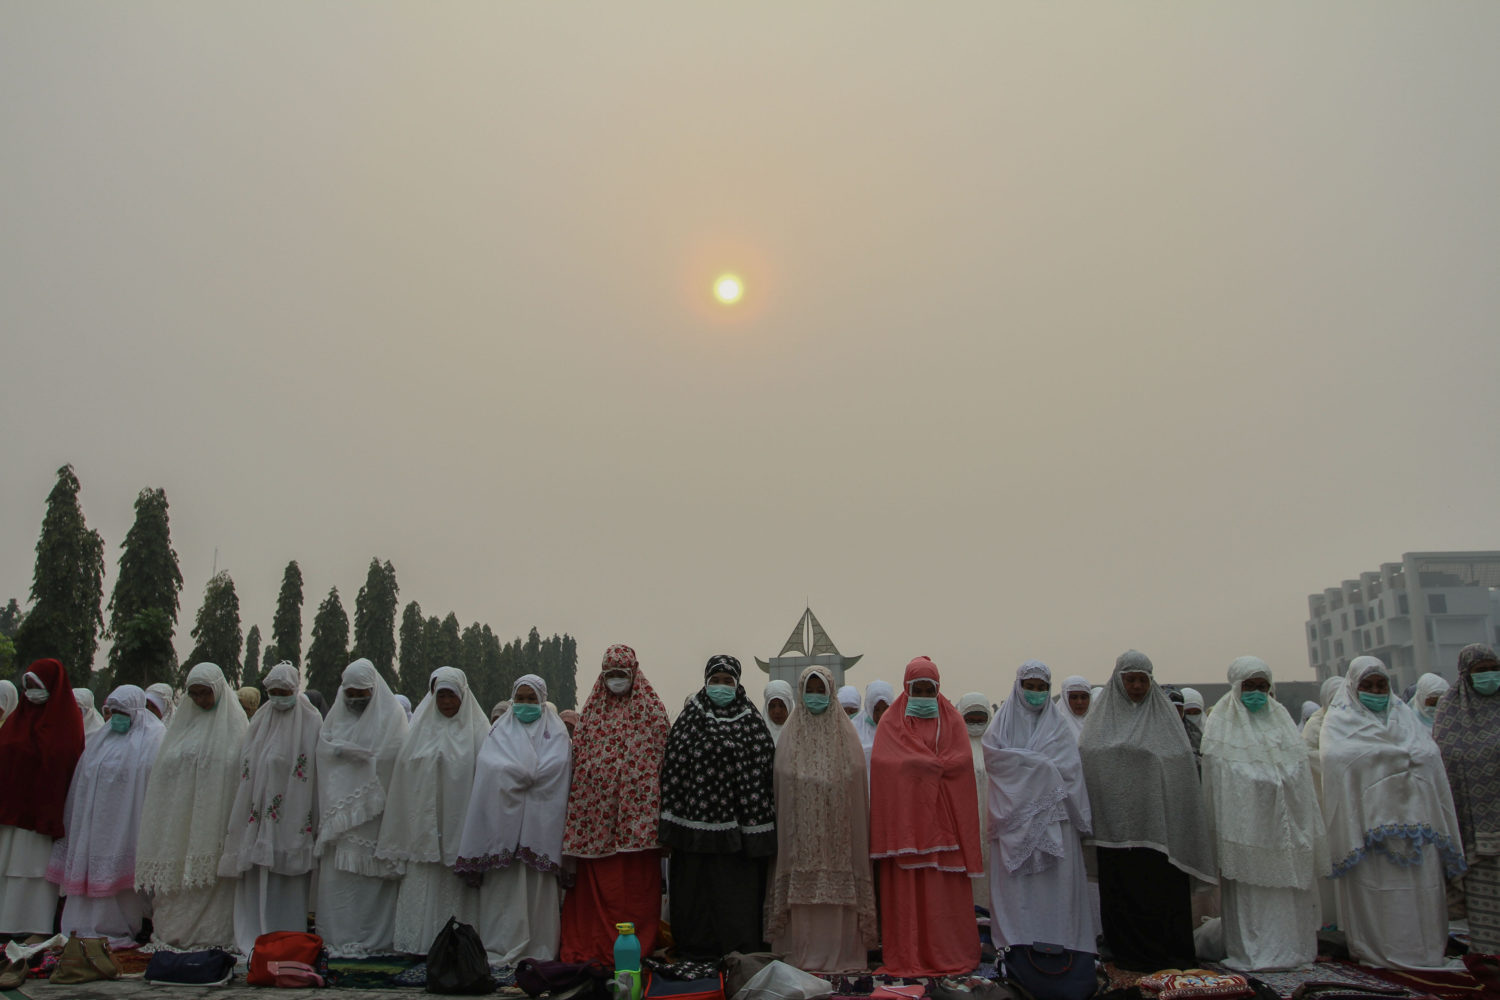 Indonesian Muslim women pray for rain during a long drought season and haze in Pekanbaru, Riau province, Indonesia, September 11, 2019 in this photo taken by Antara Foto. Antara Foto/Rony Muharrman/ via REUTERS